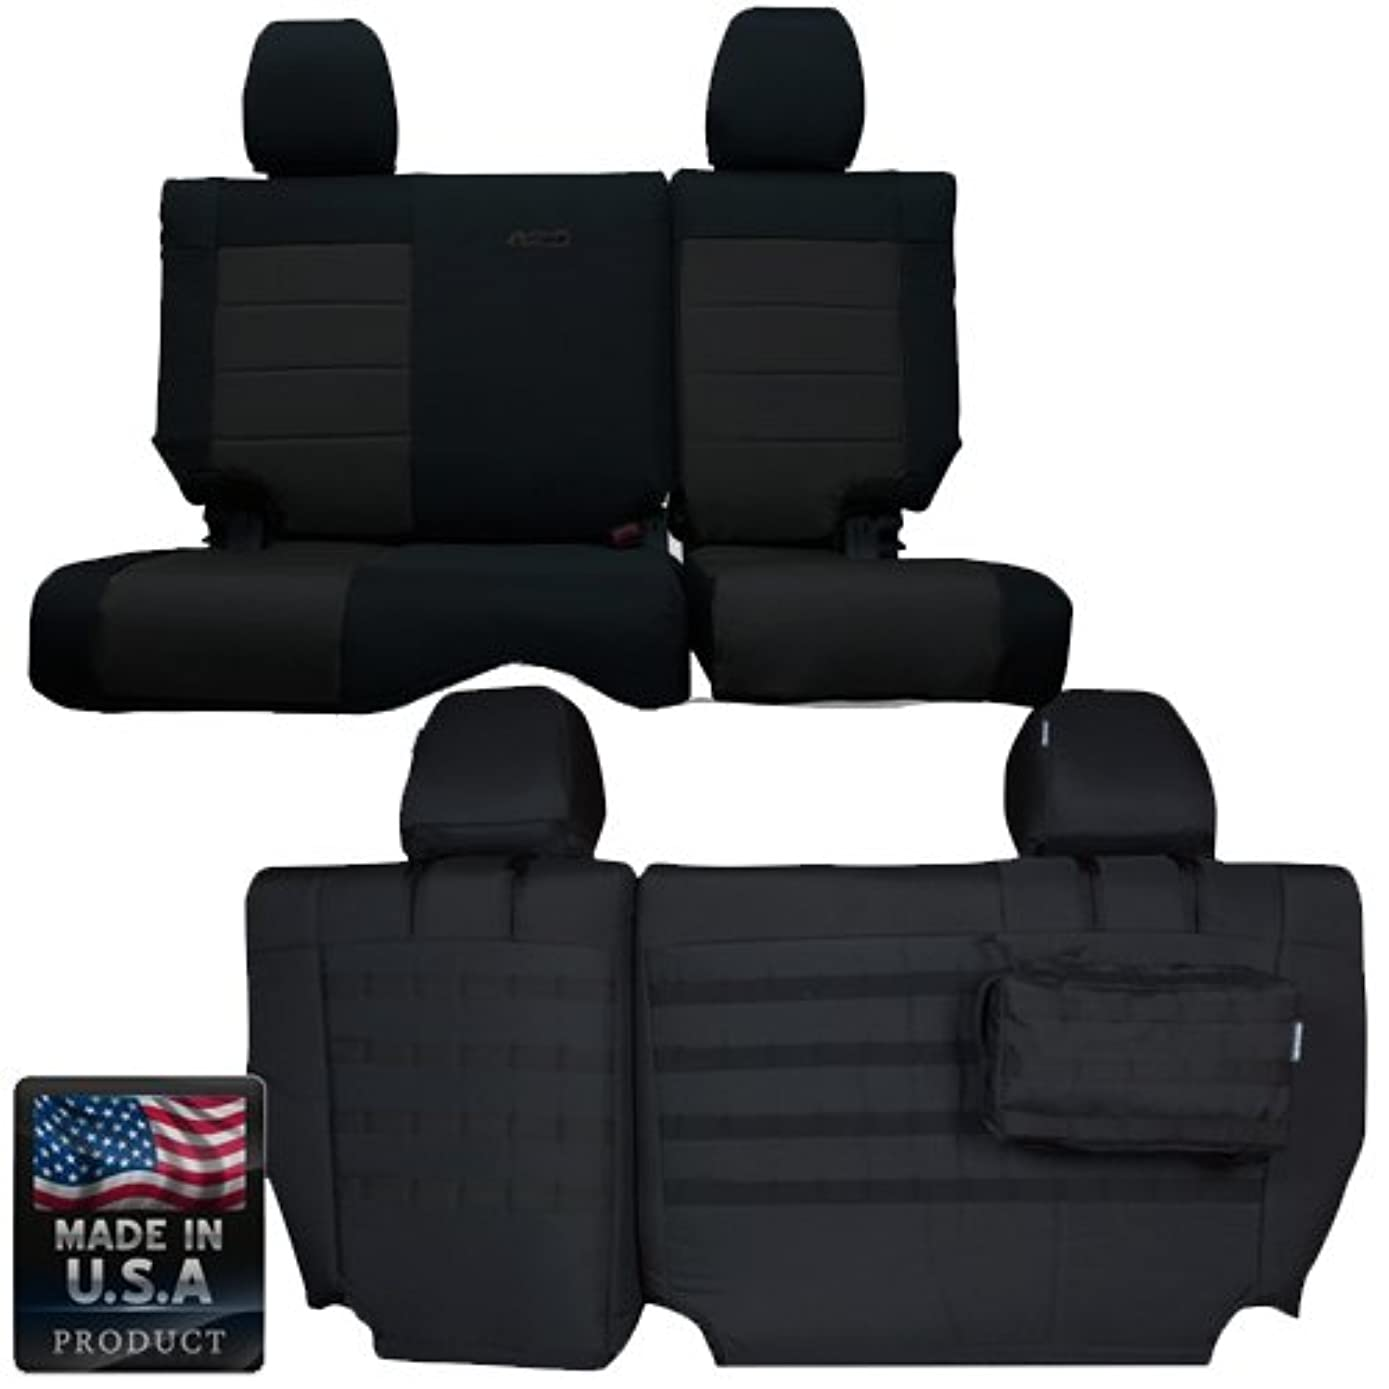 Bartact BTJKSC1112R4BB - 2011-2012 Jeep Wrangler JK 4-Door - Black/Black Mil-Spec with MOLLE System Rear Bench Seat Covers